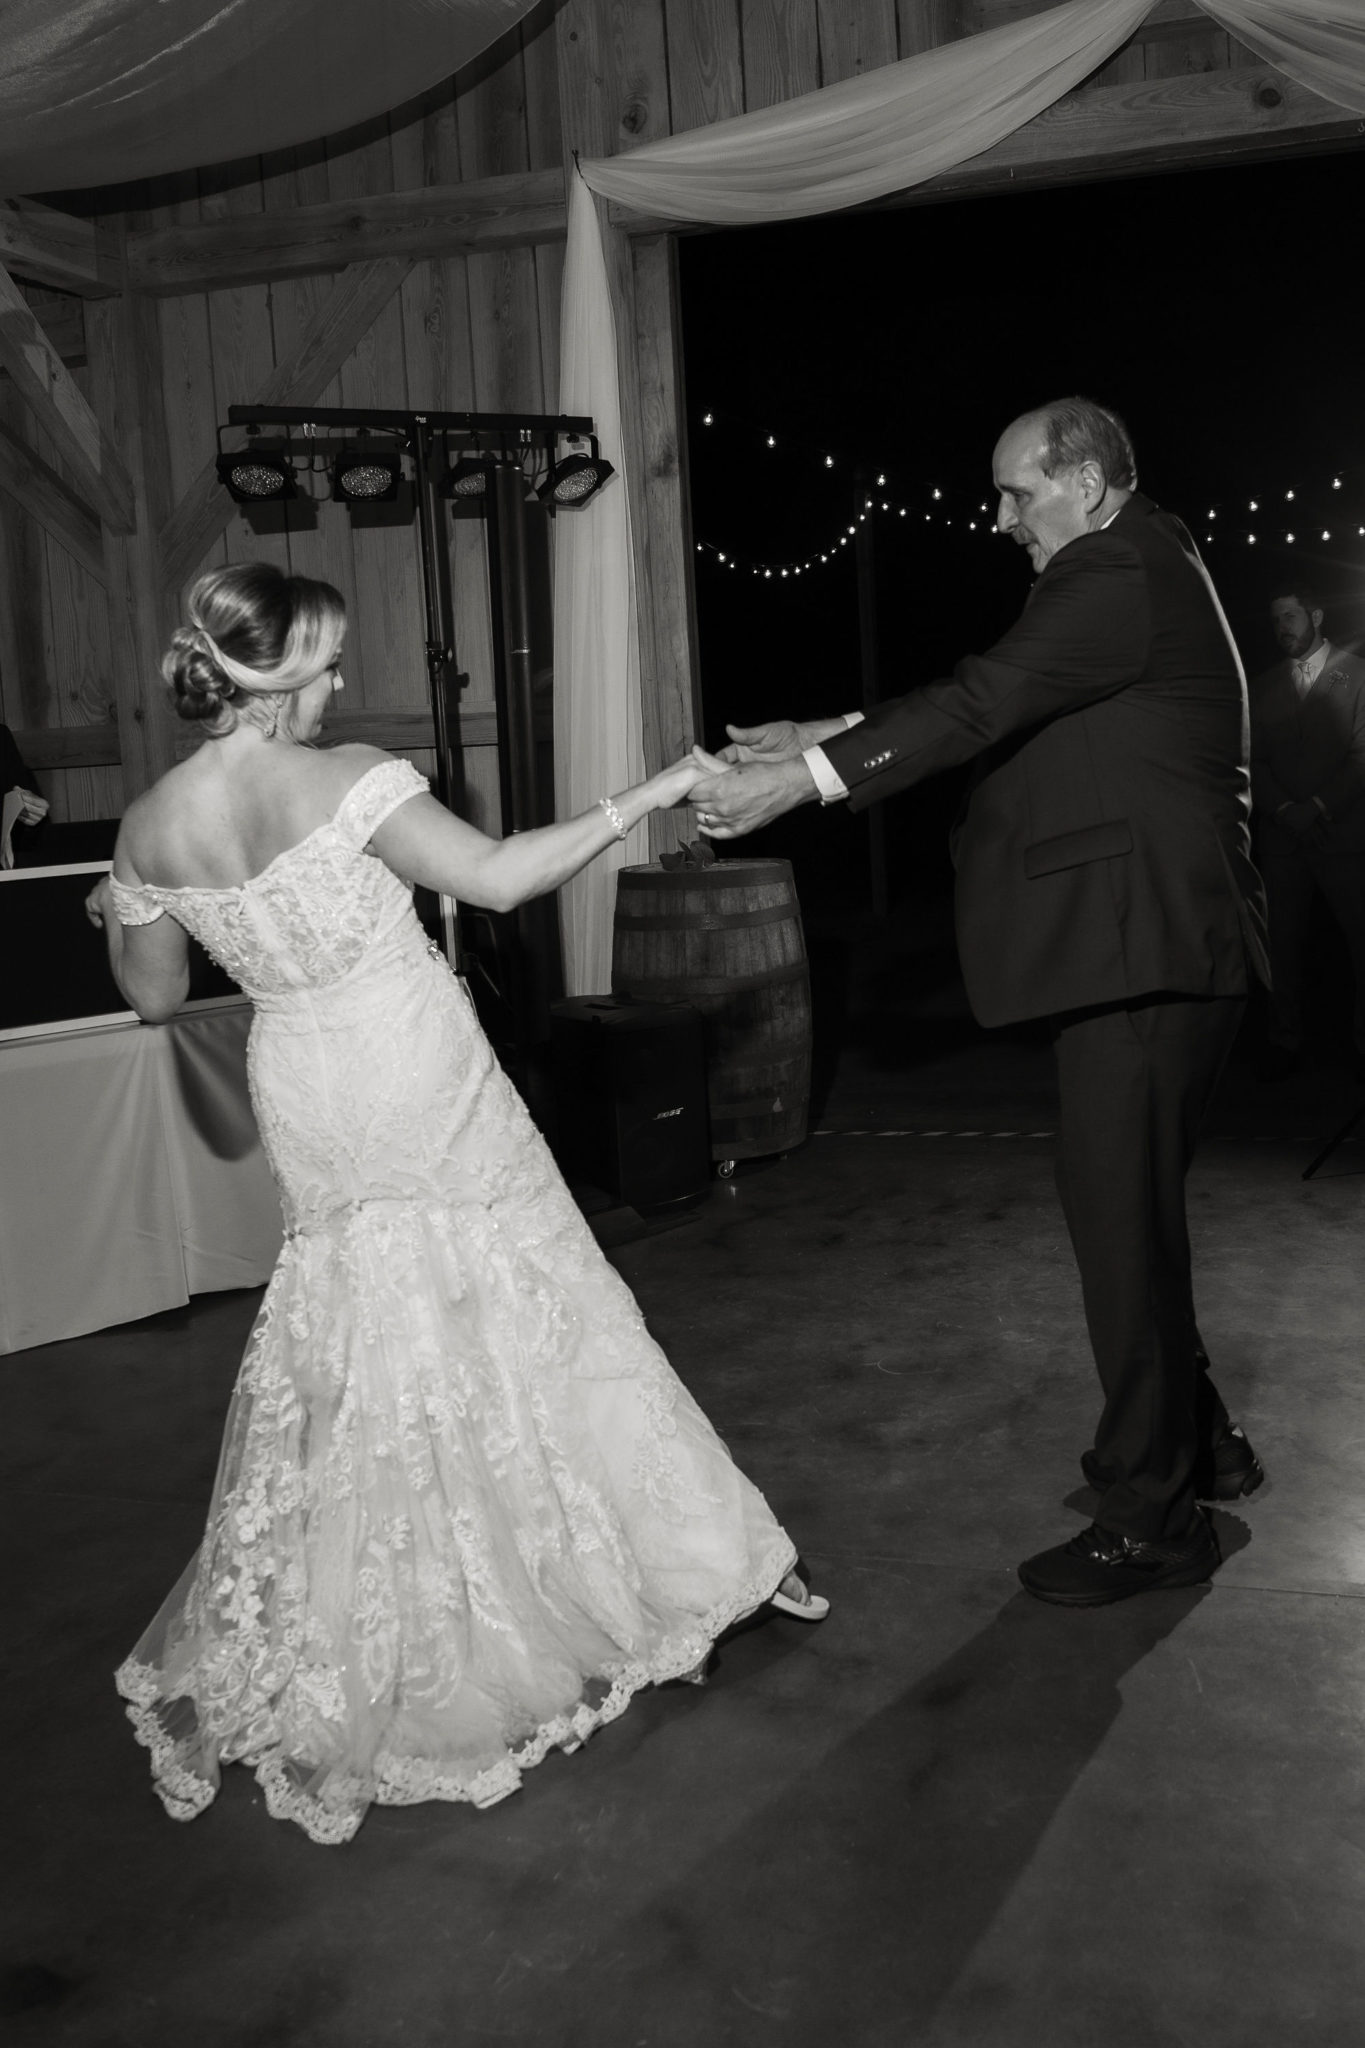 The father-daughter dance.